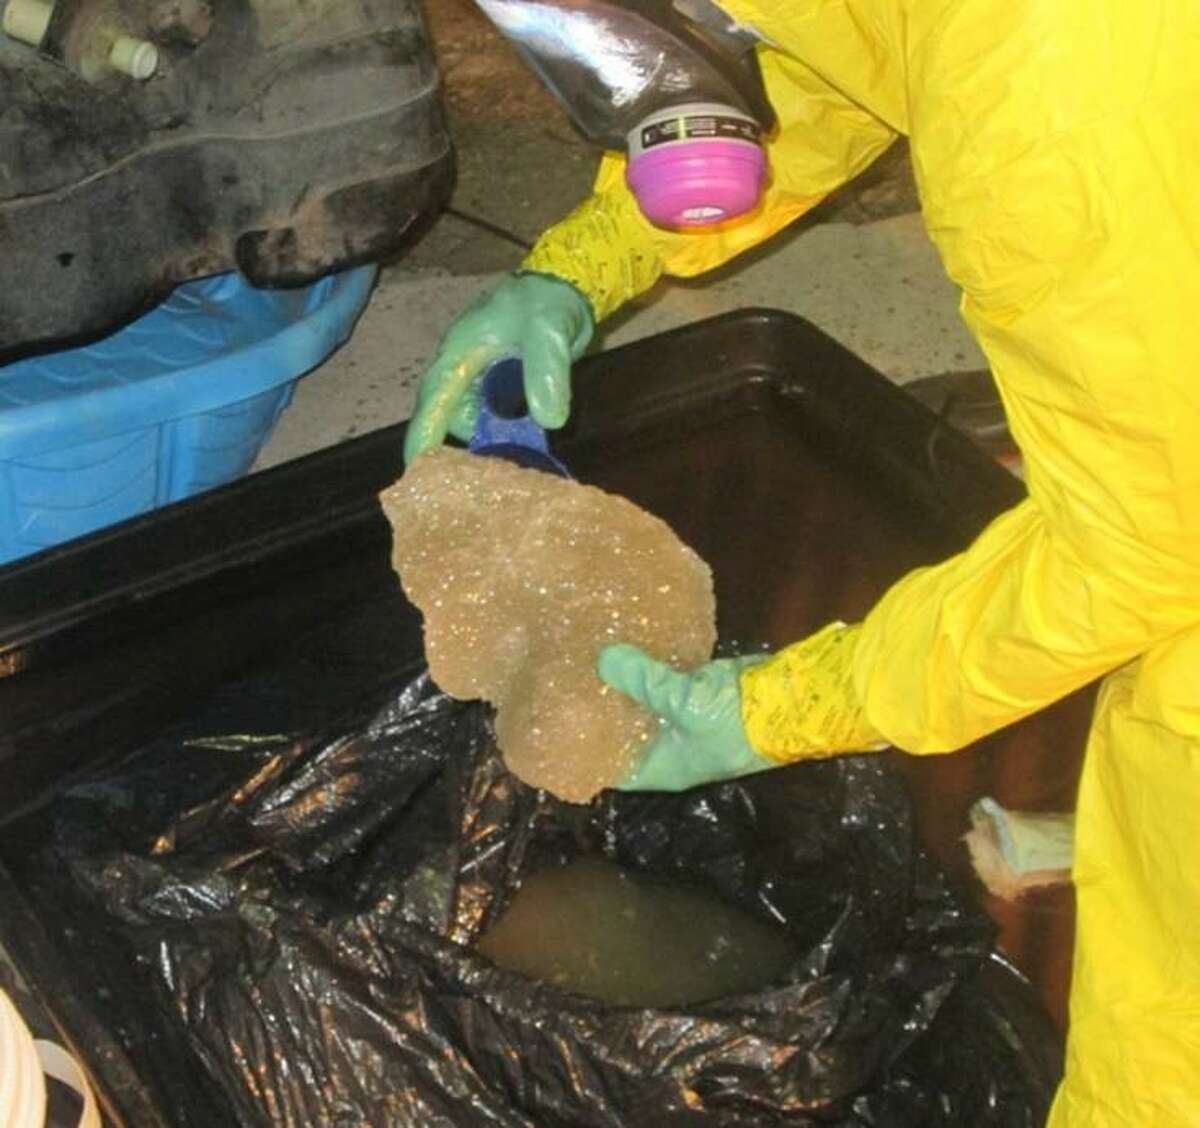 U.S. Customs and Border Protection agents confiscated about $2.1 million in liquid meth from a pickup in Sarita, Texas.